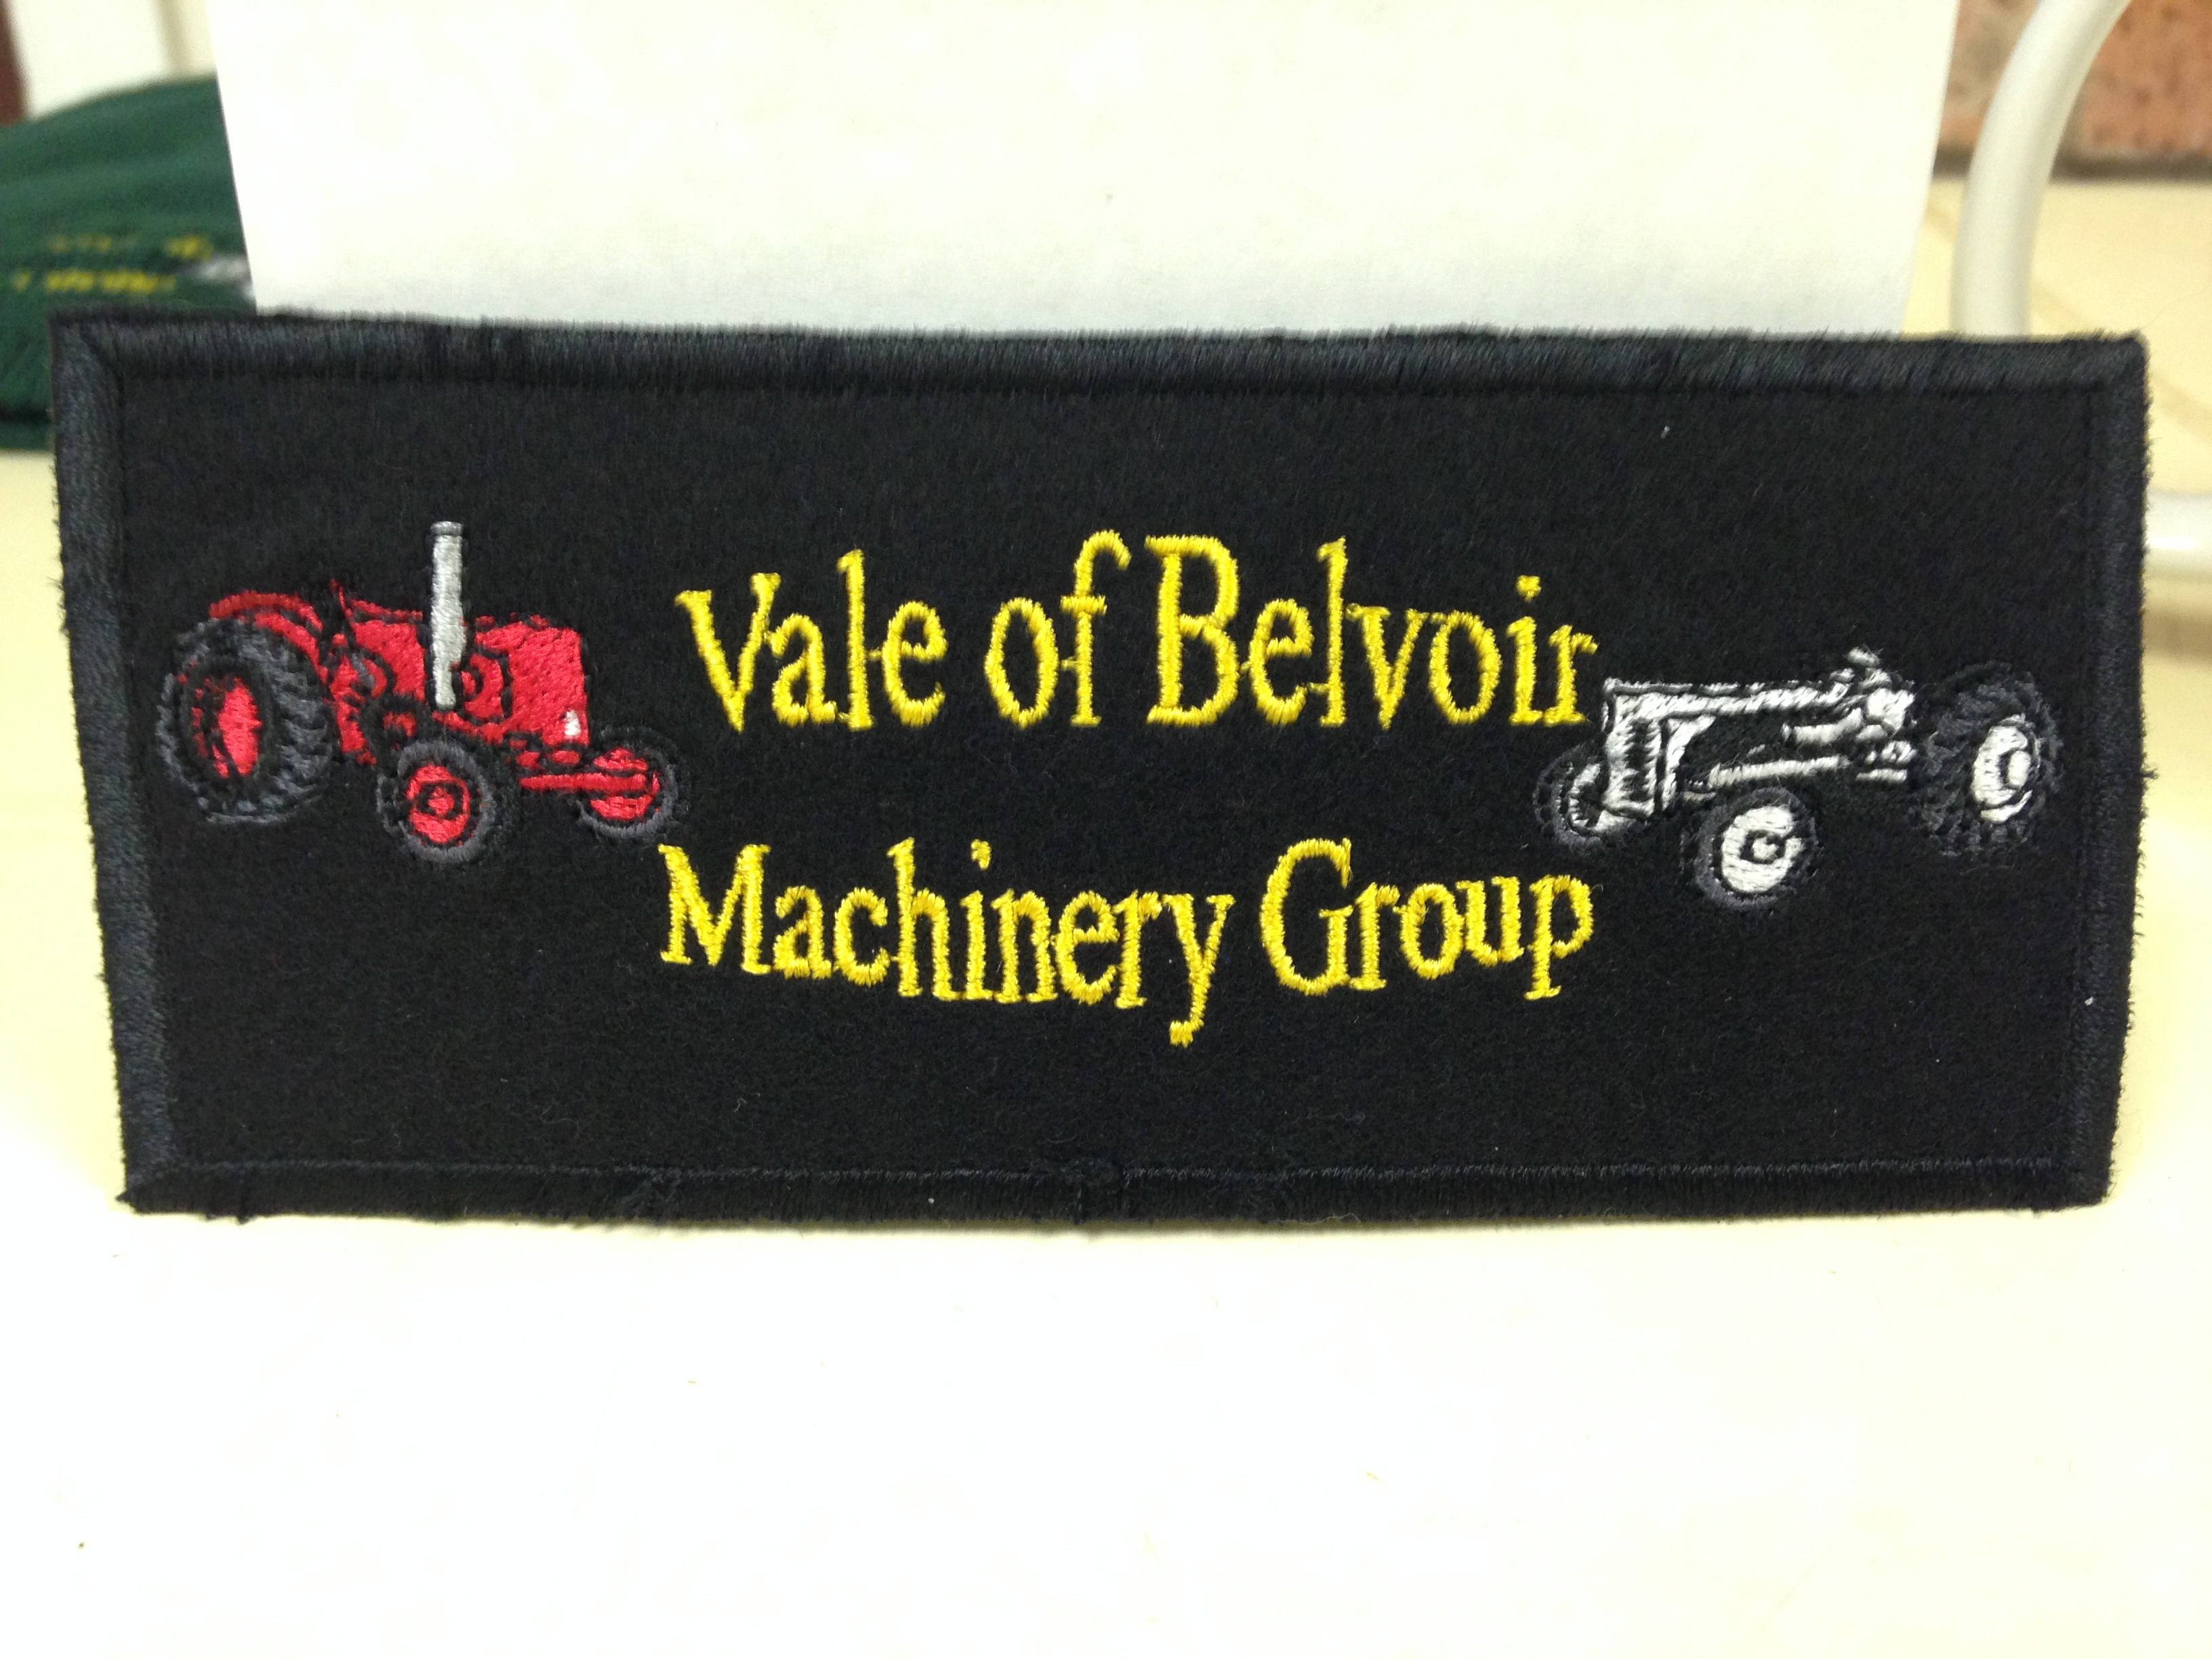 Club Branded Sew on Patch - Priced at £3